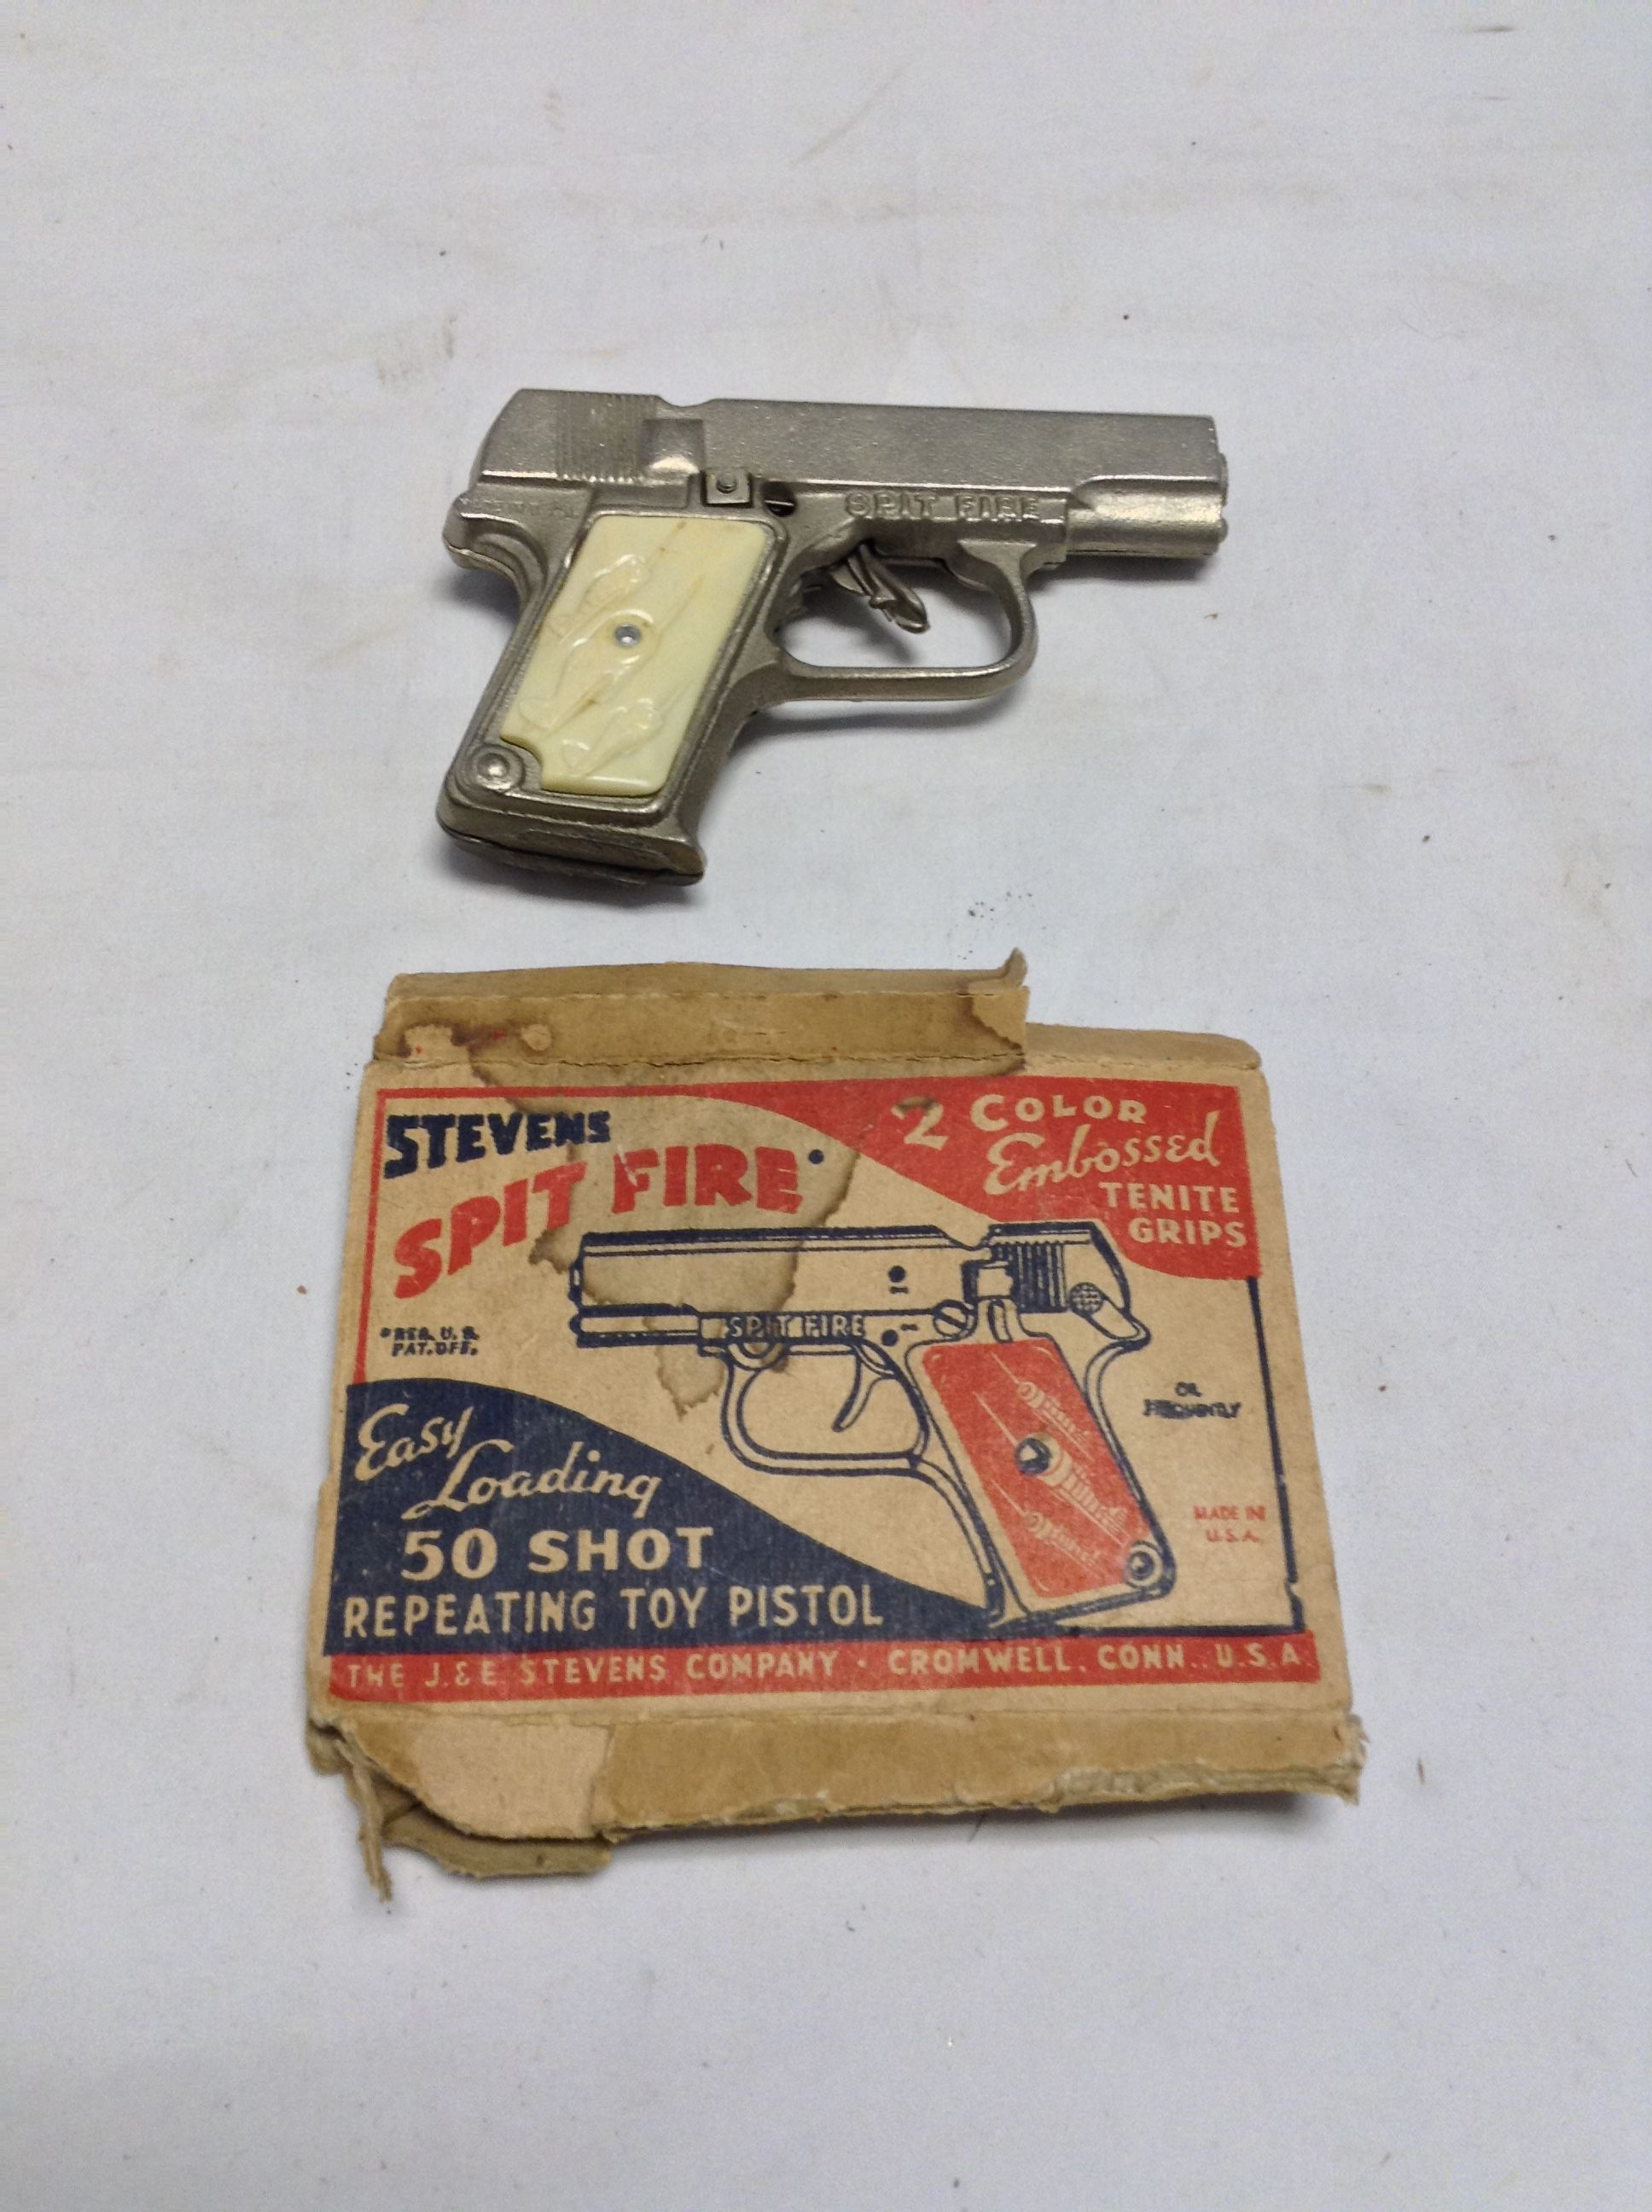 Spitfire Repeating Toy Pistol & Box